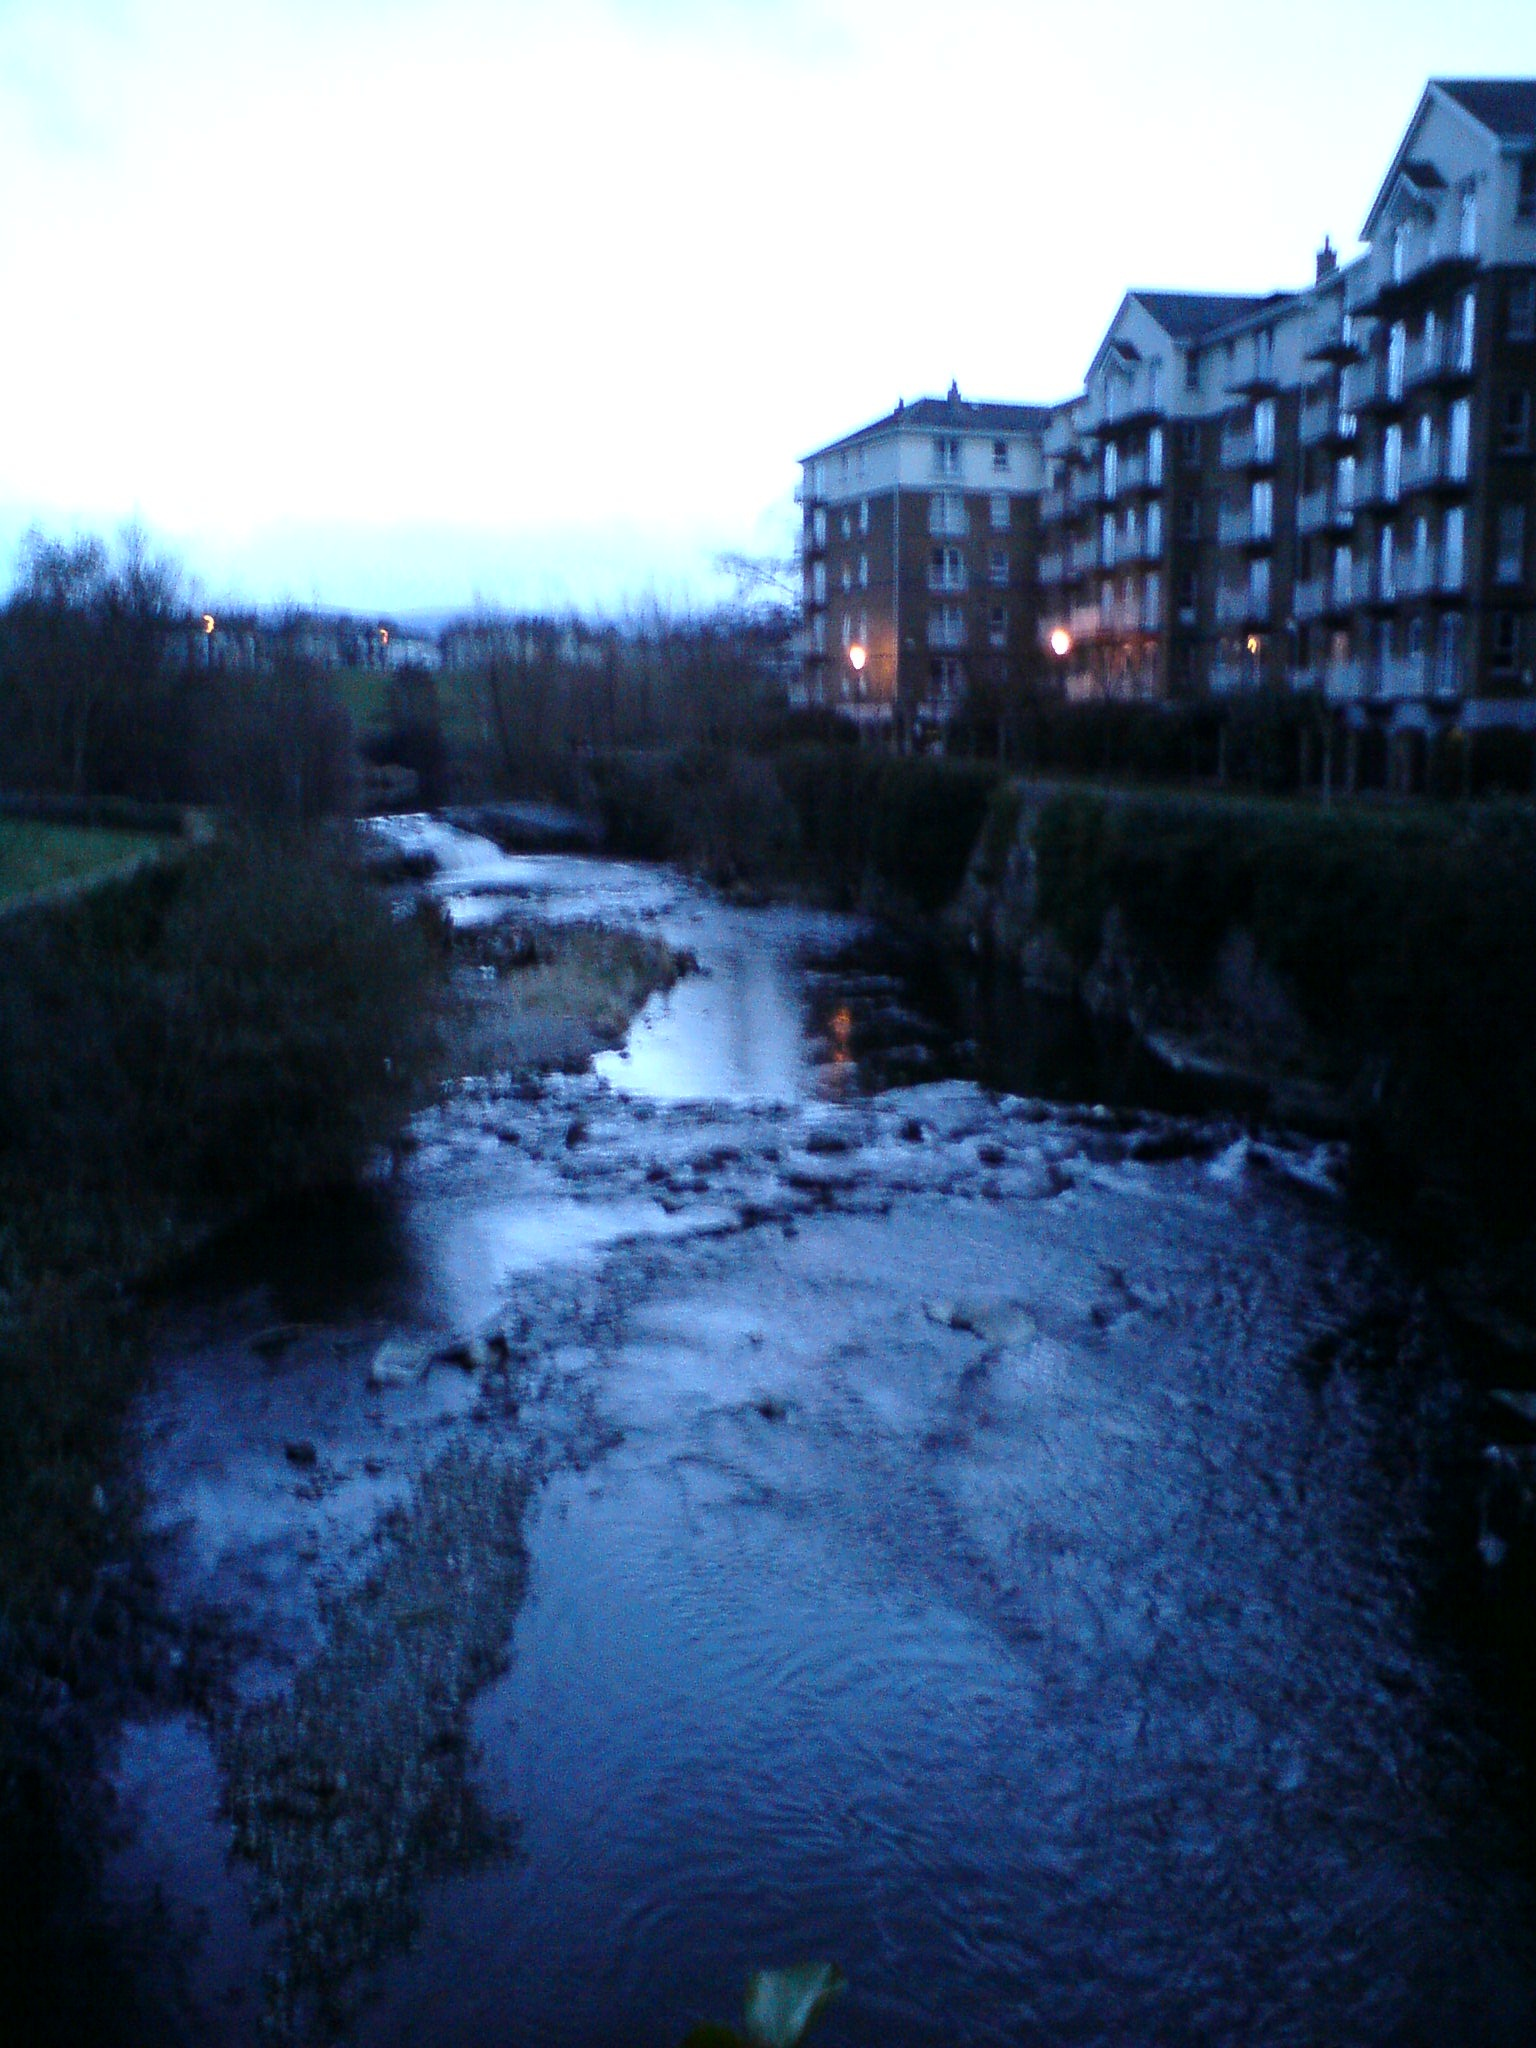 Twilight by the Dodder